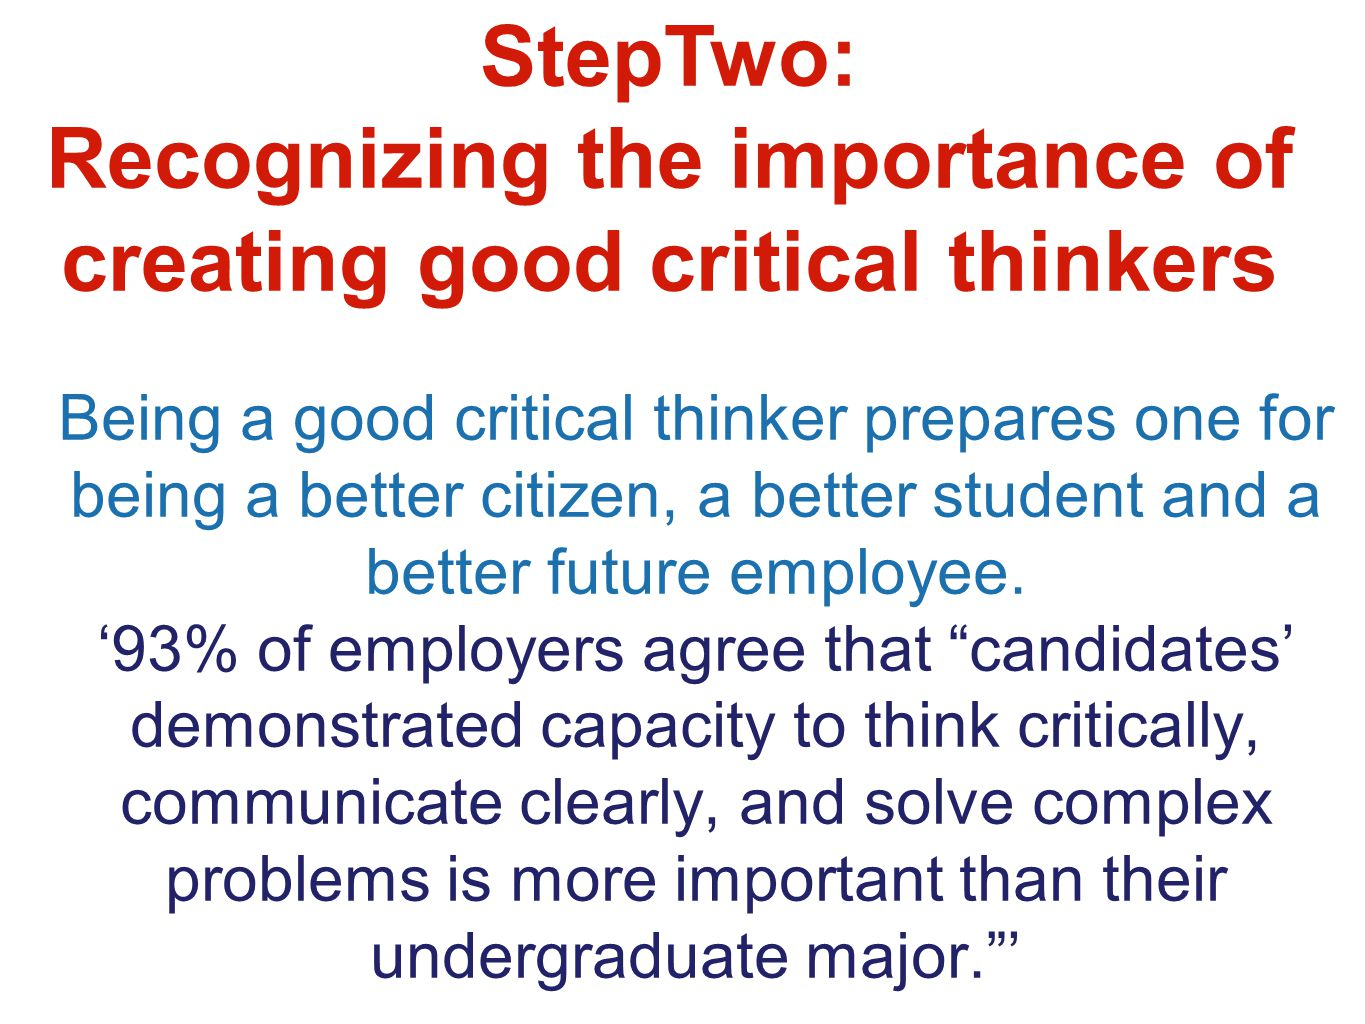 Being a good critical thinker prepares one for being a better citizen, a better student and a better future employee.